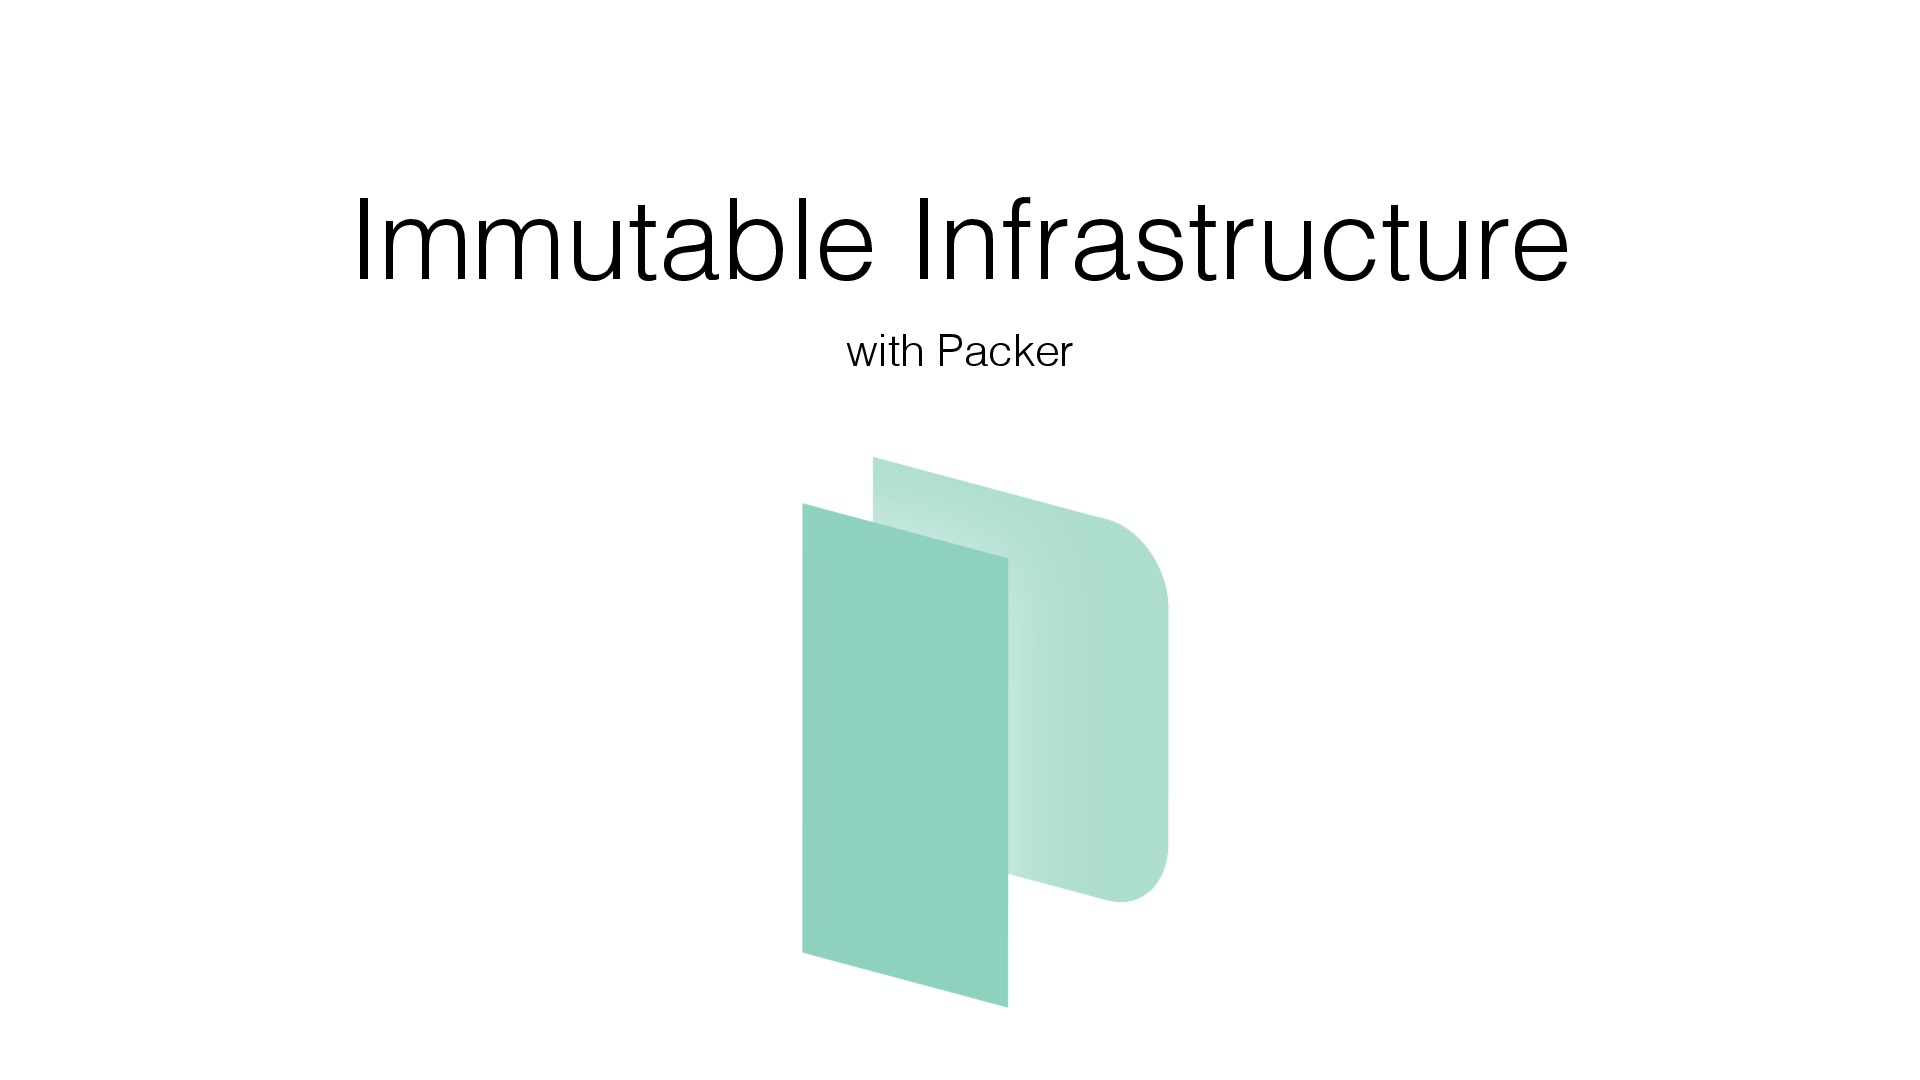 Immutable Infrastructure with Packer